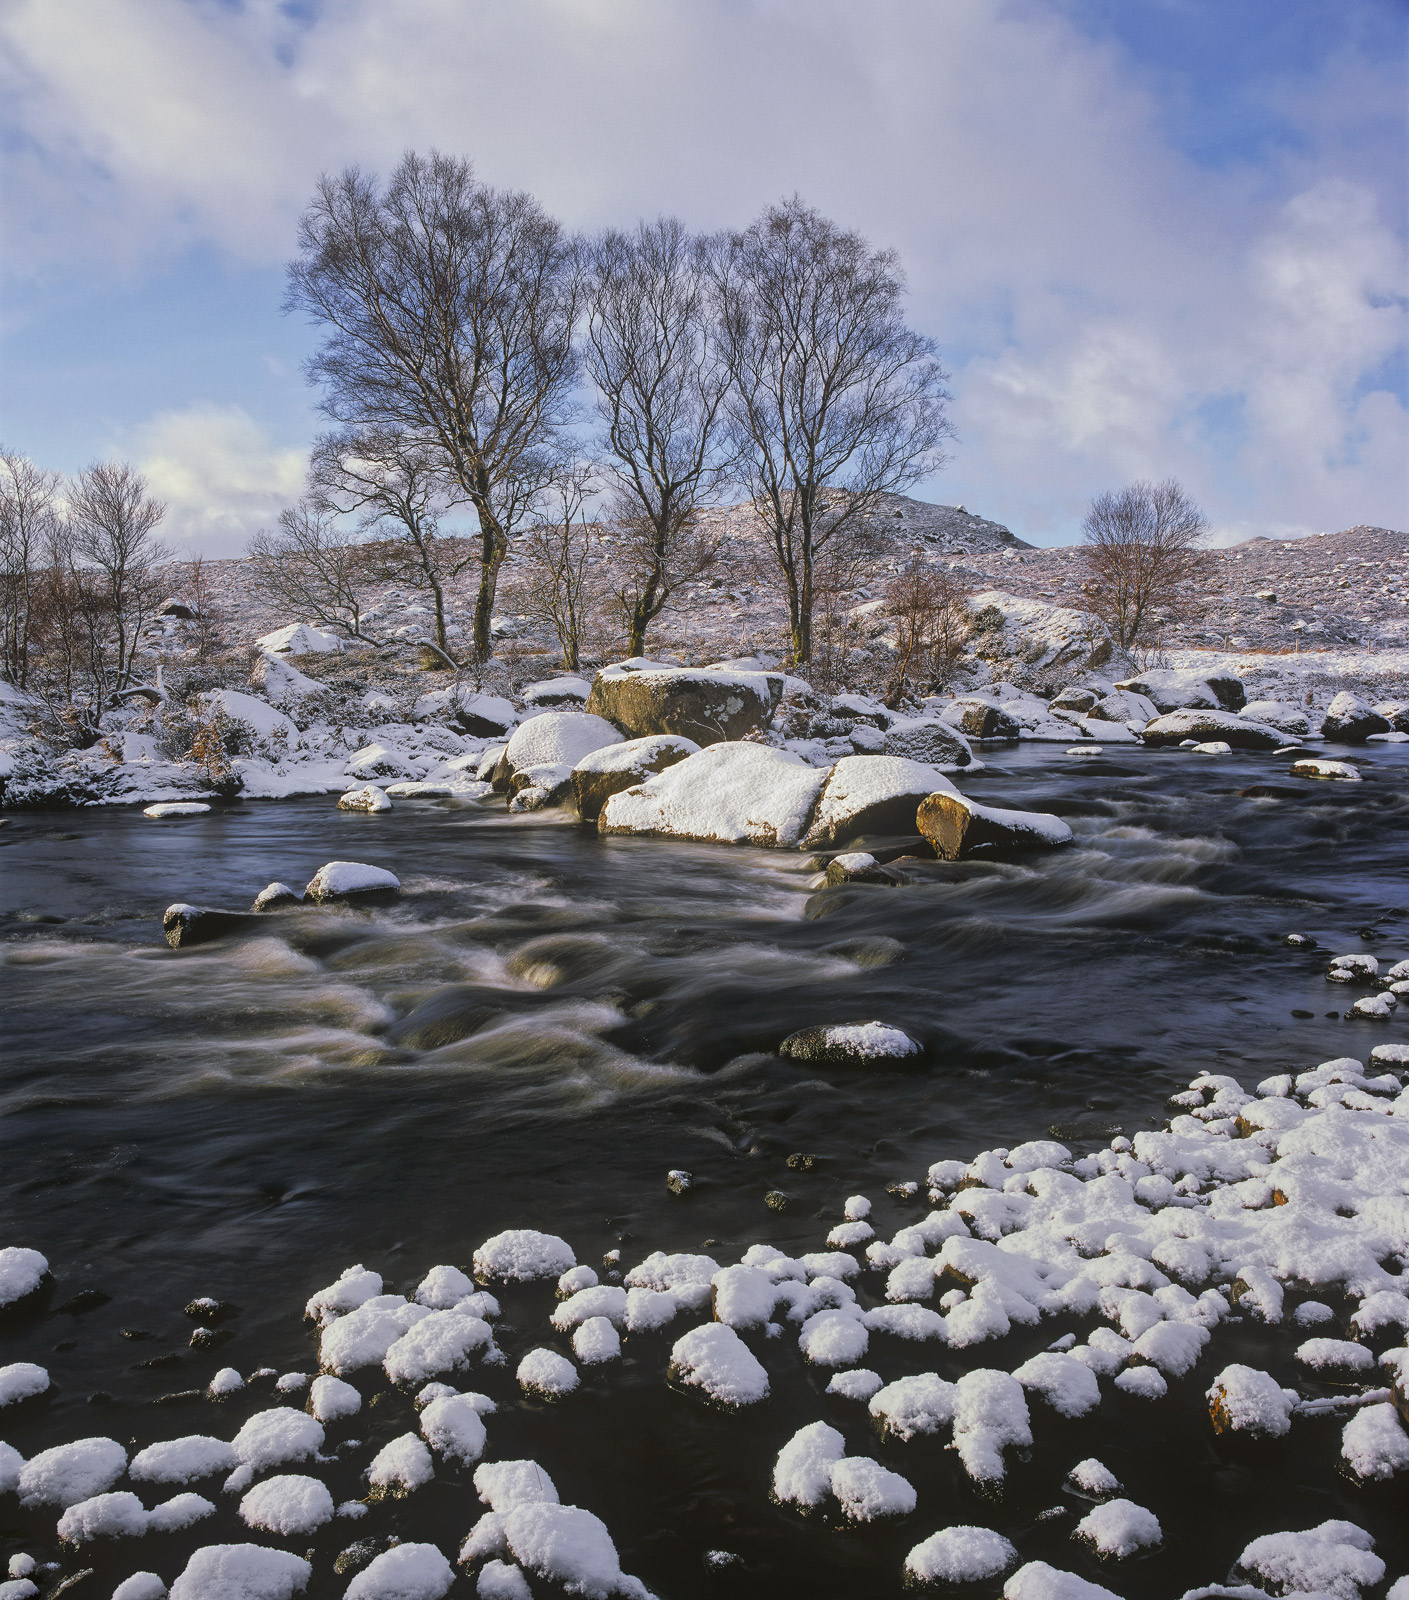 Glascarnoch Ice River, Glascarnoch, Highlands, Scotland, dam, golf balls, snow, pebbles, stream, birch trees, clouds, ri, photo